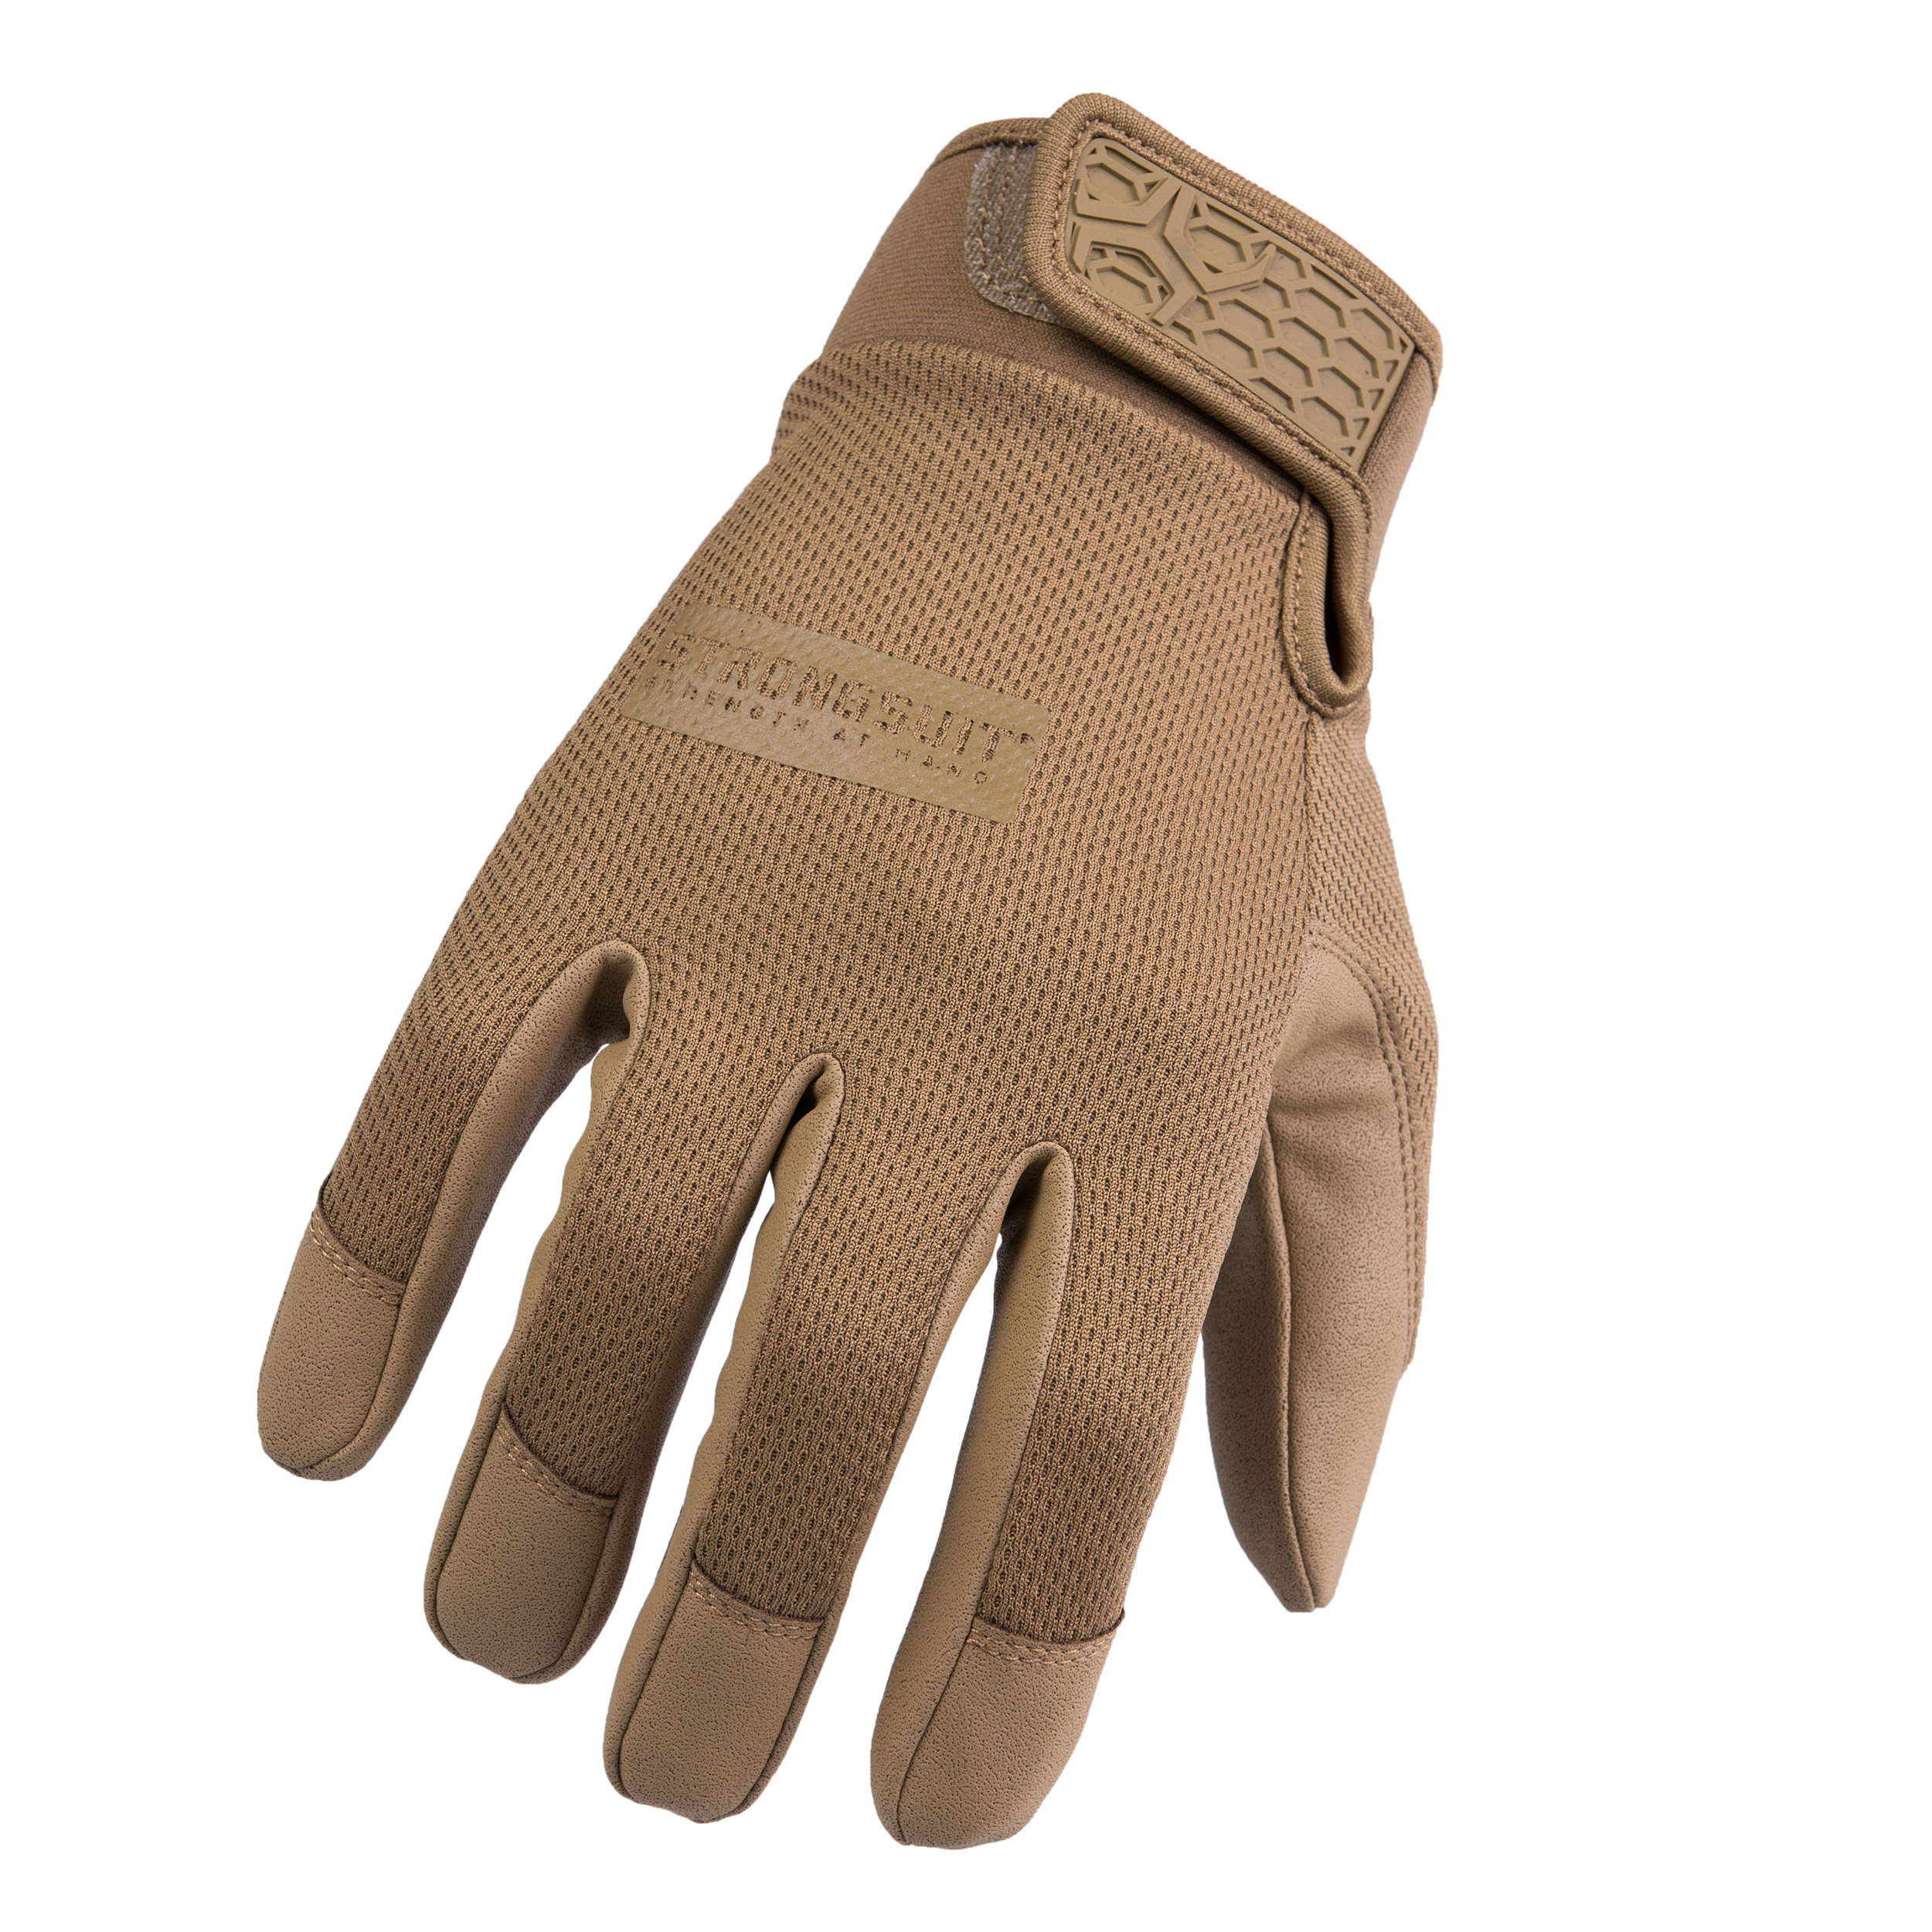 Second Skin Gloves, Coyote, Extra